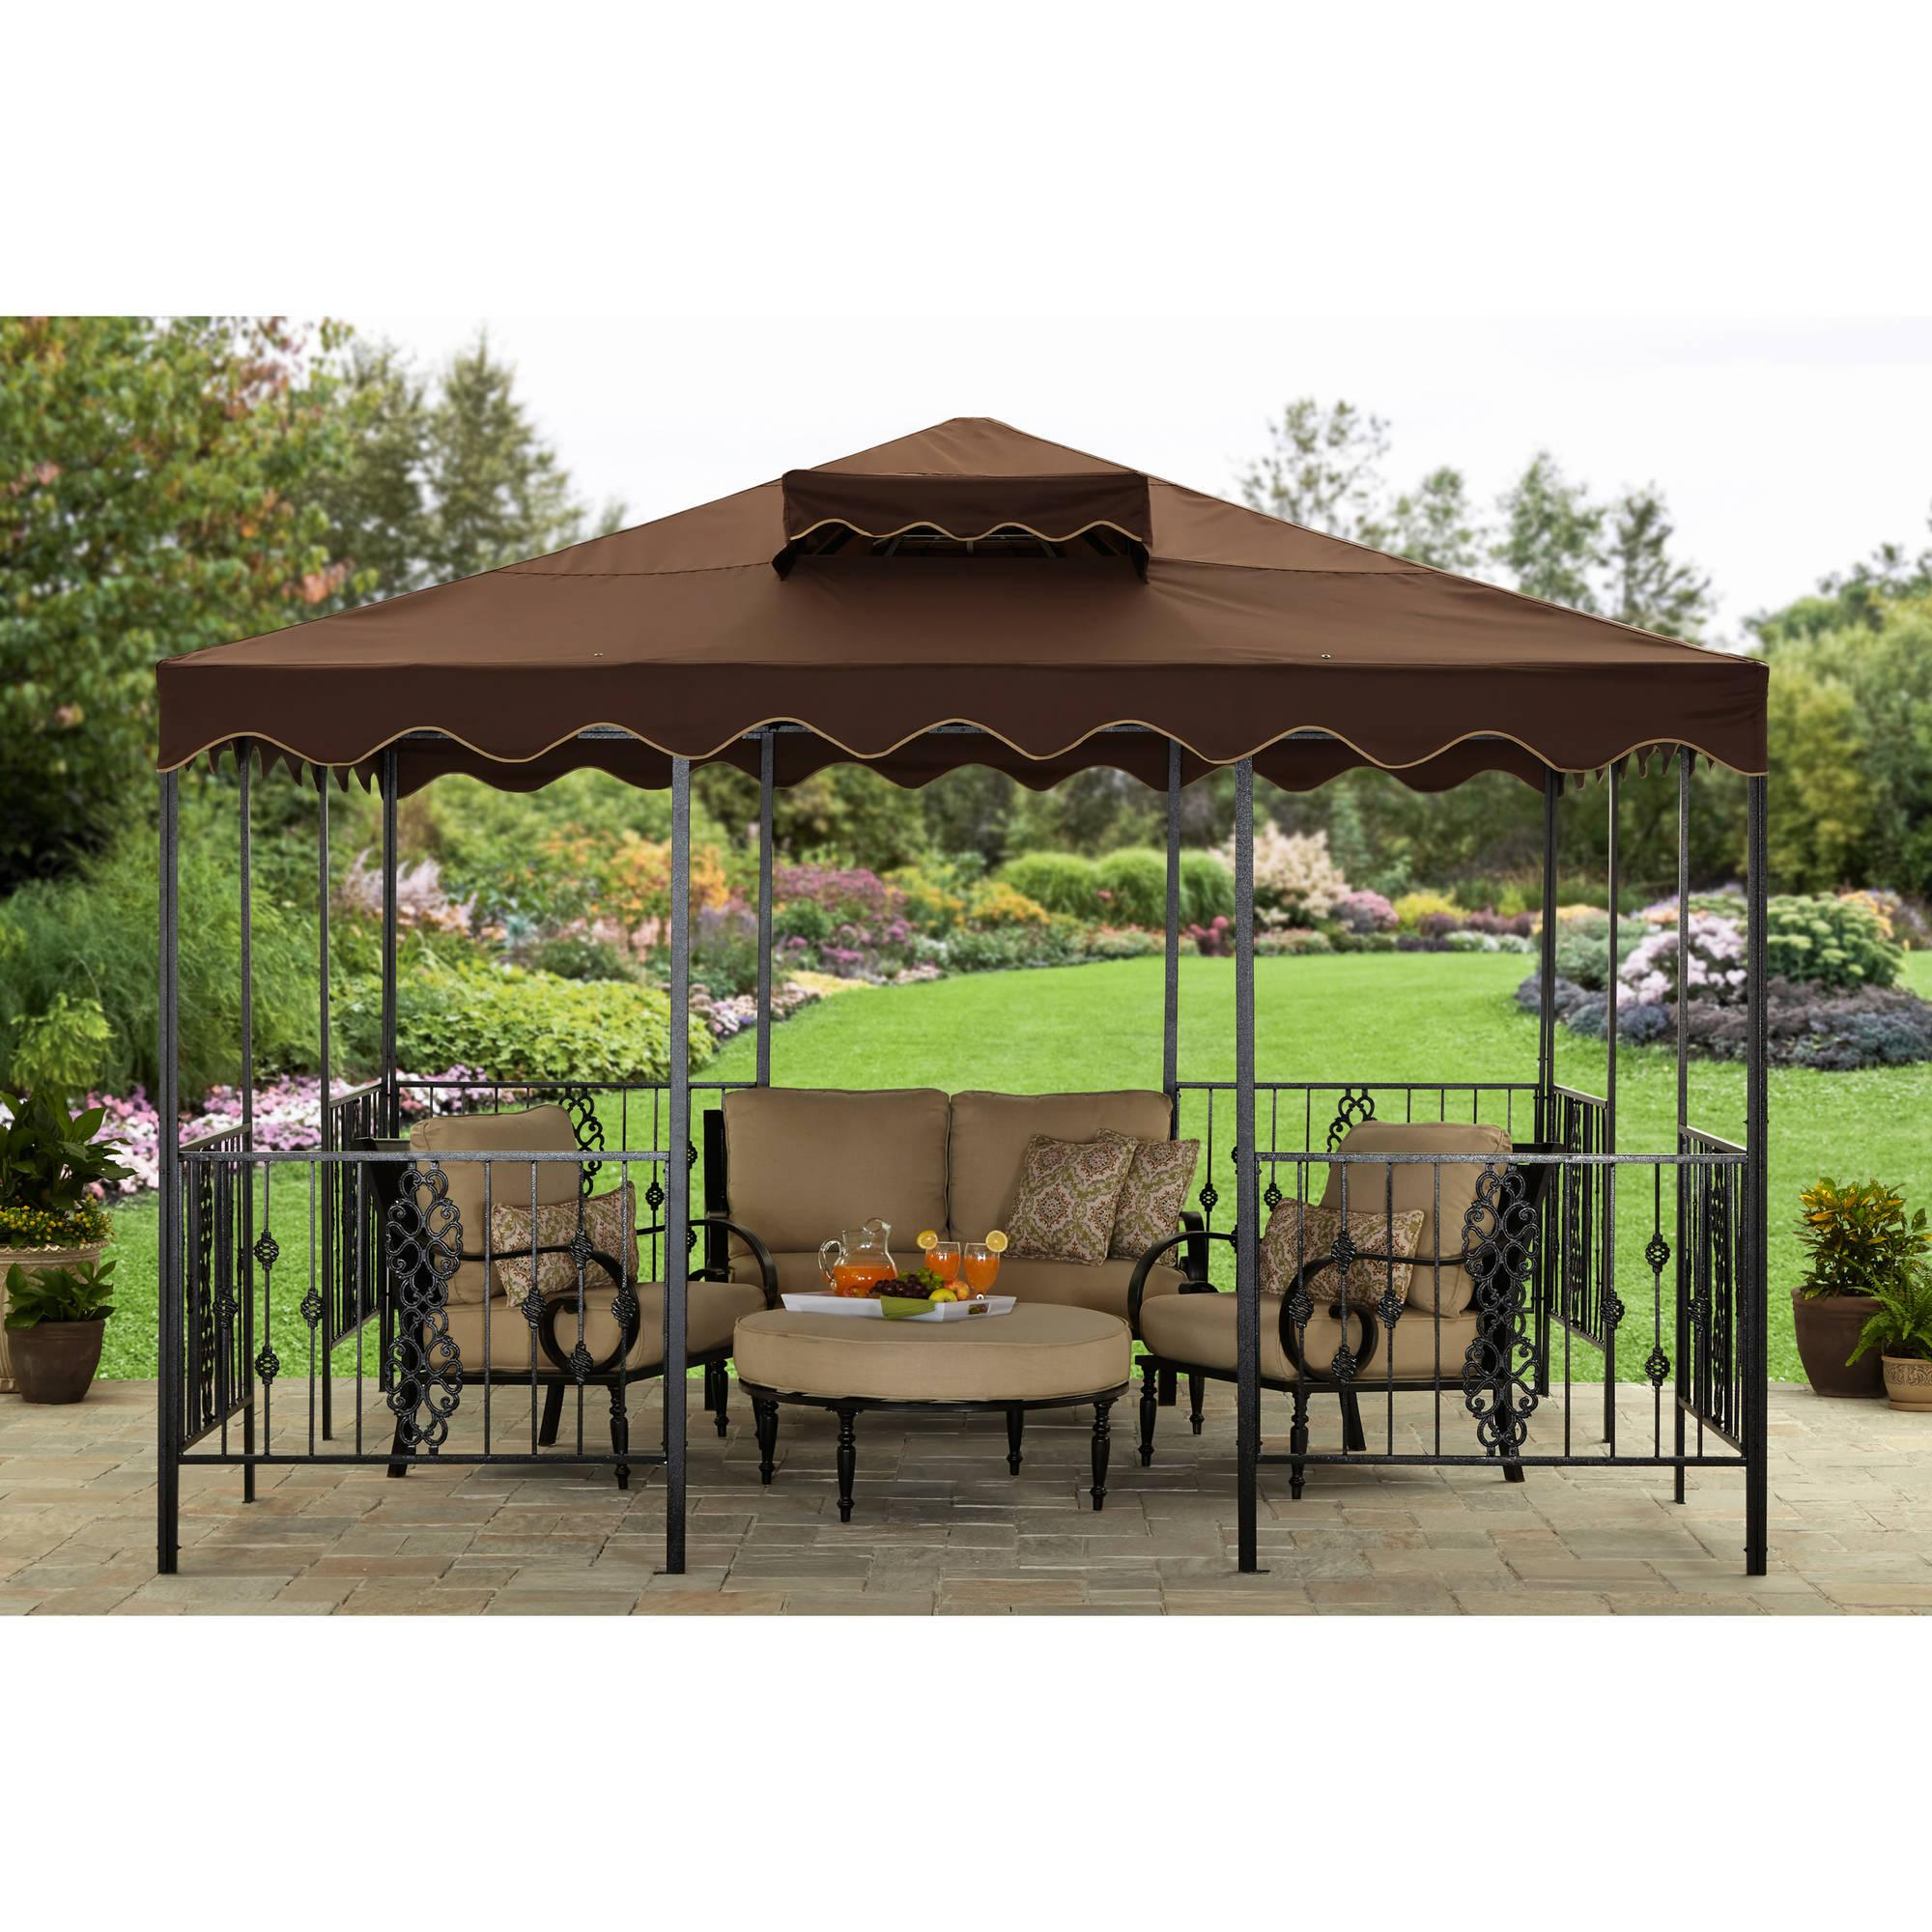 better homes and gardens castleman garden gazebo sale. Black Bedroom Furniture Sets. Home Design Ideas